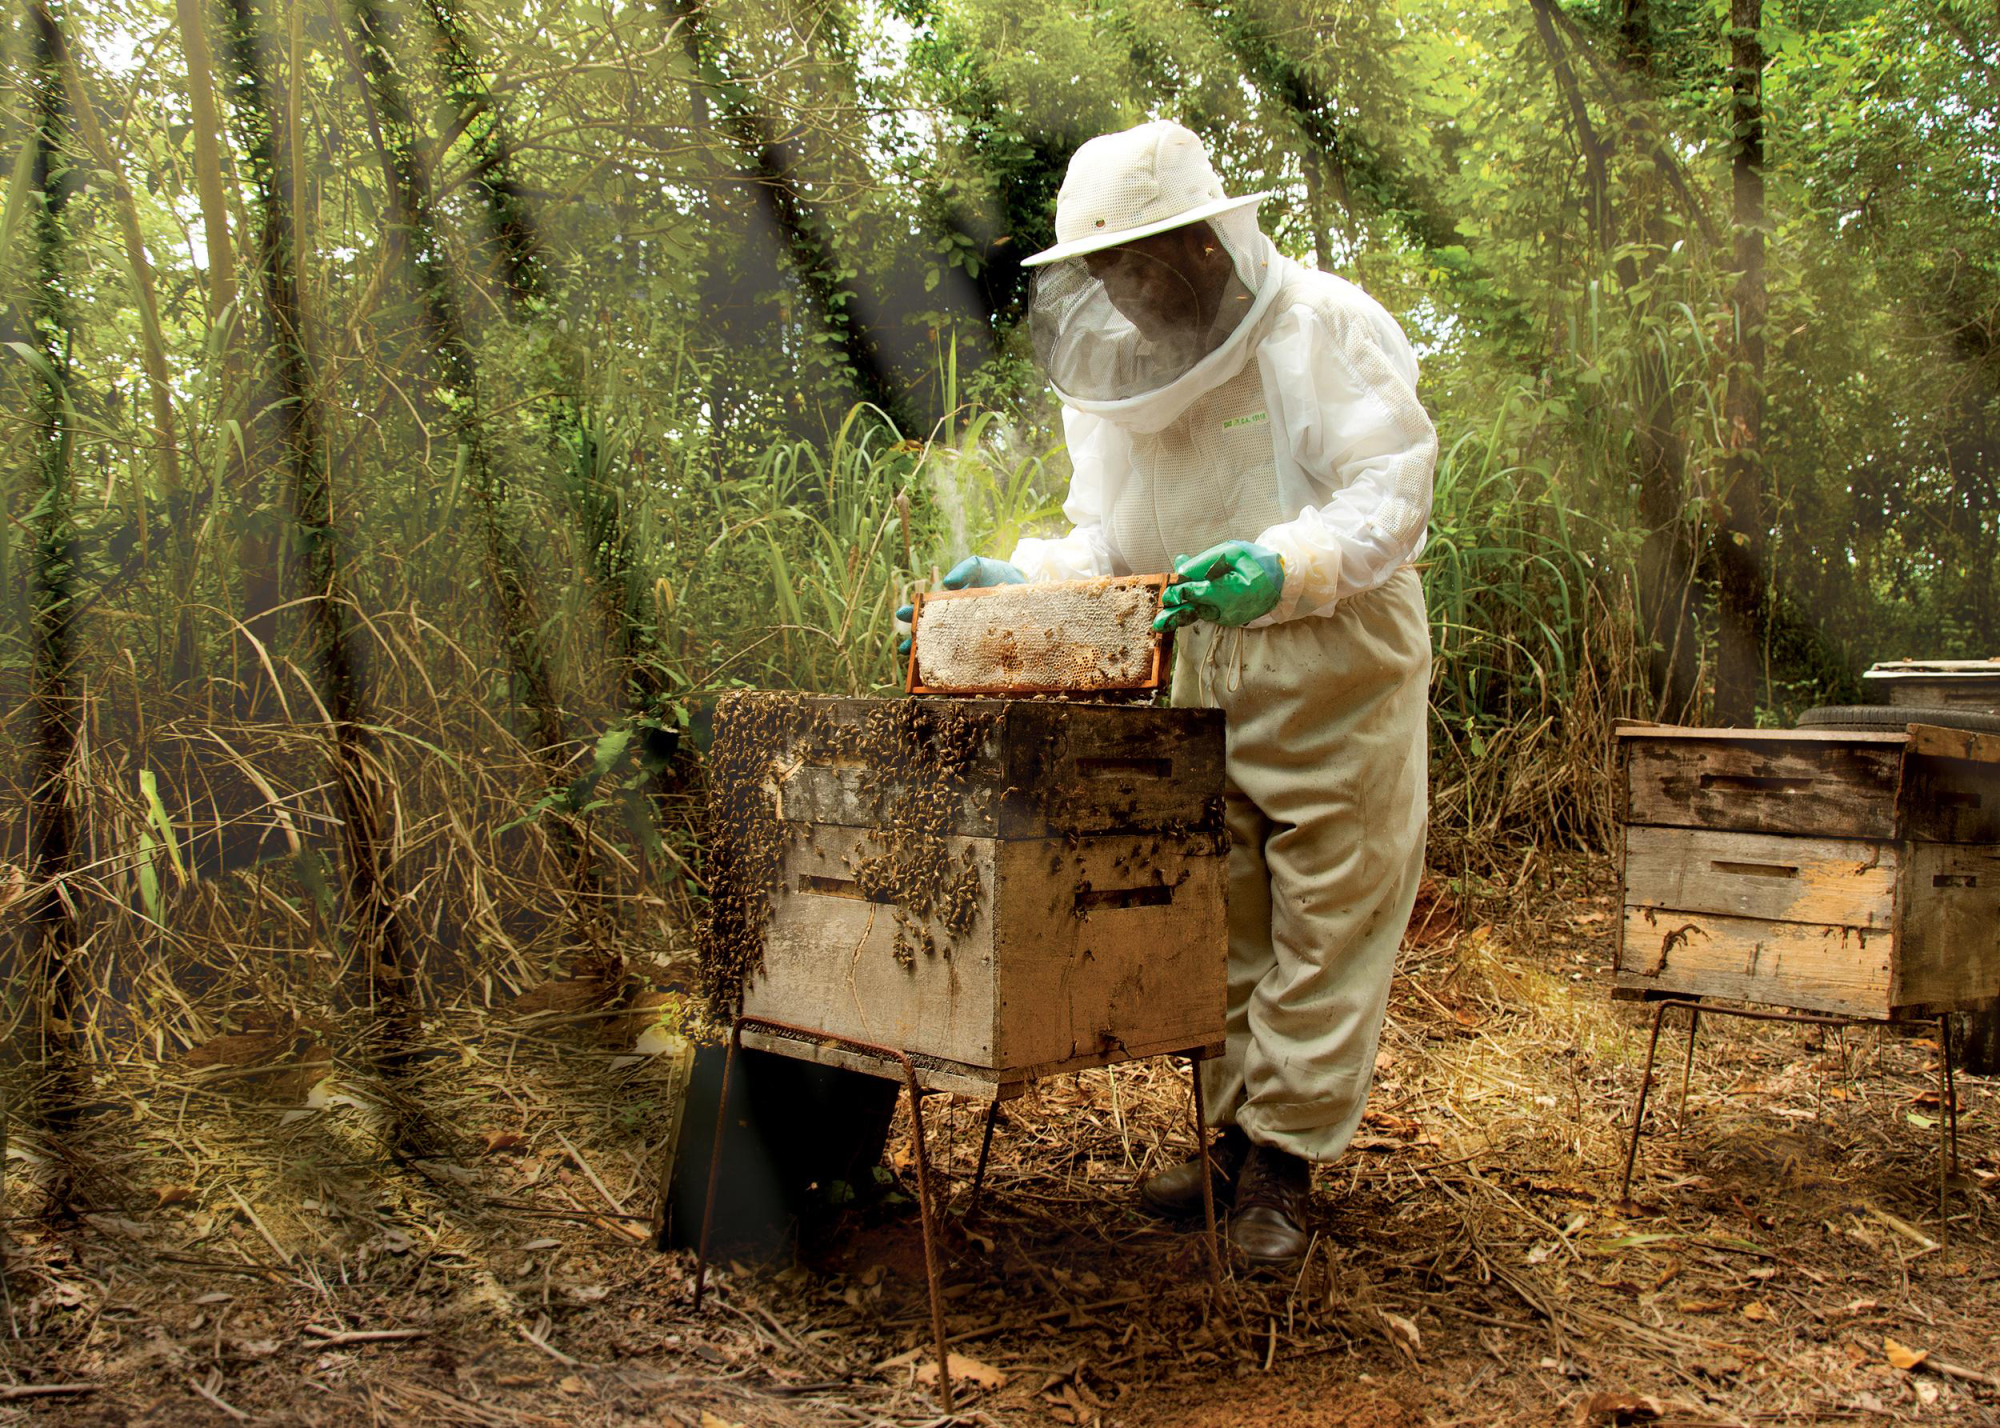 Around 200 beekeepers keep honeybees in forests owned by Celulose Nipo-Brasileira S.A. in Brazil. | OJI HOLDINGS CORP.